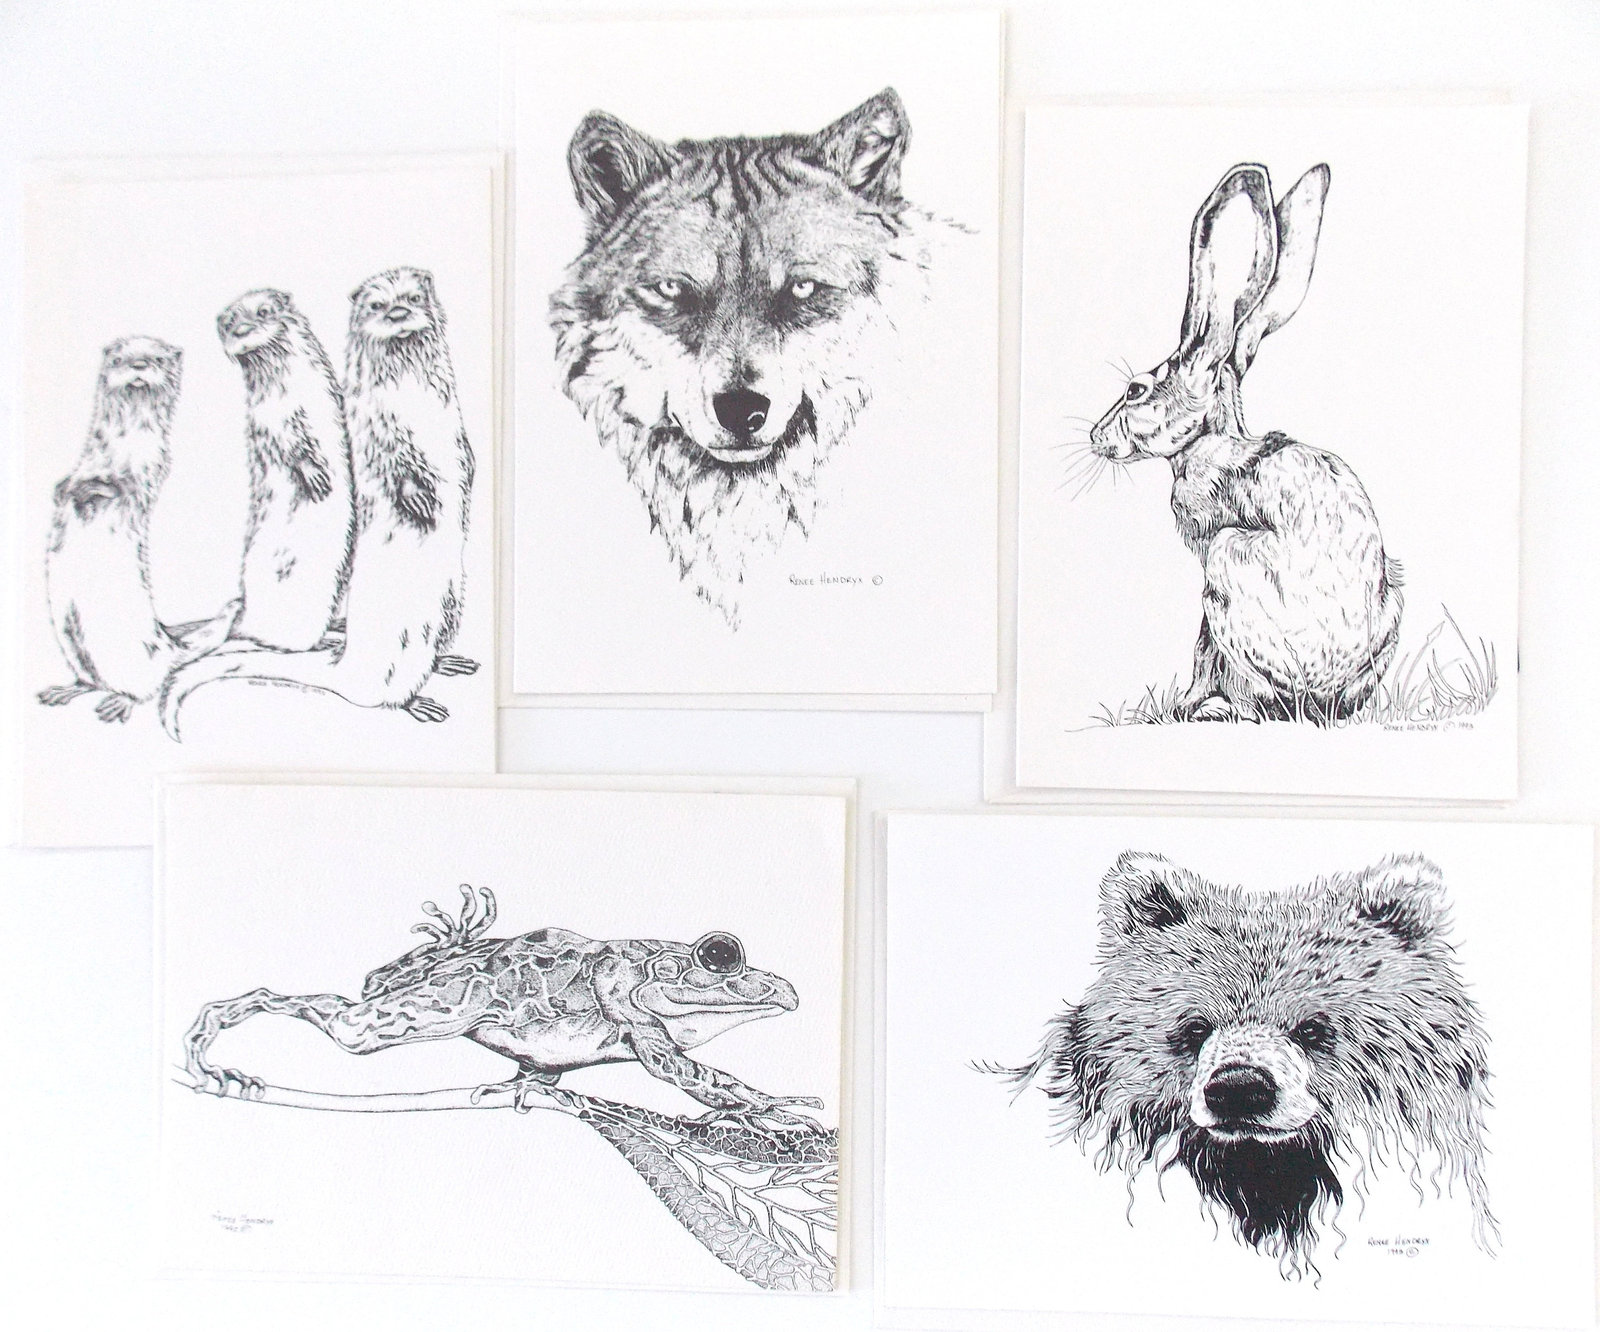 Grizzled Old Wolf, Framed Matted Wildlife Art Print, Pen and Ink, Animal Art Dra